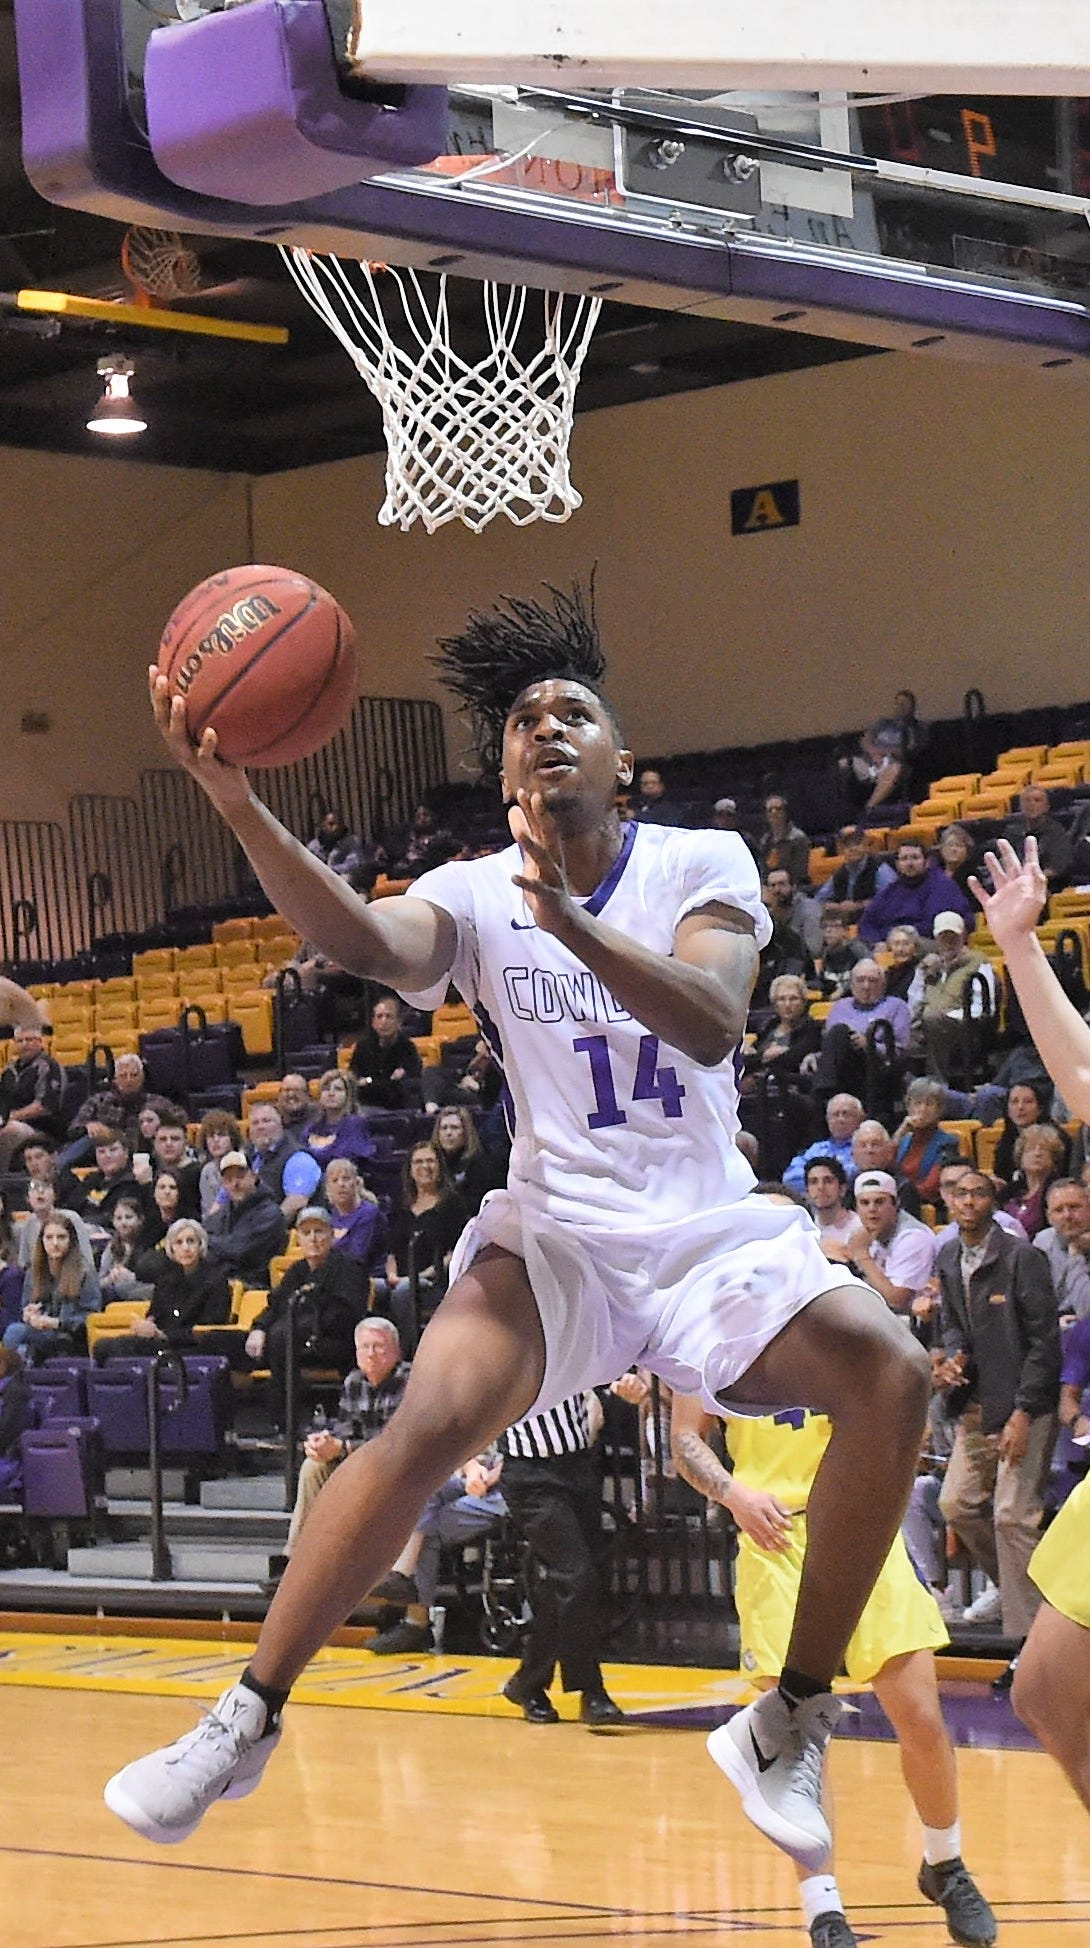 HSU's Steven Quinn (14) goes underneath the basket for a layup during the second half against Concordia at the Mabee Complex on Thursday, Jan. 31, 2019. The Cowboys won 76-67 to stay in the ASC West race.